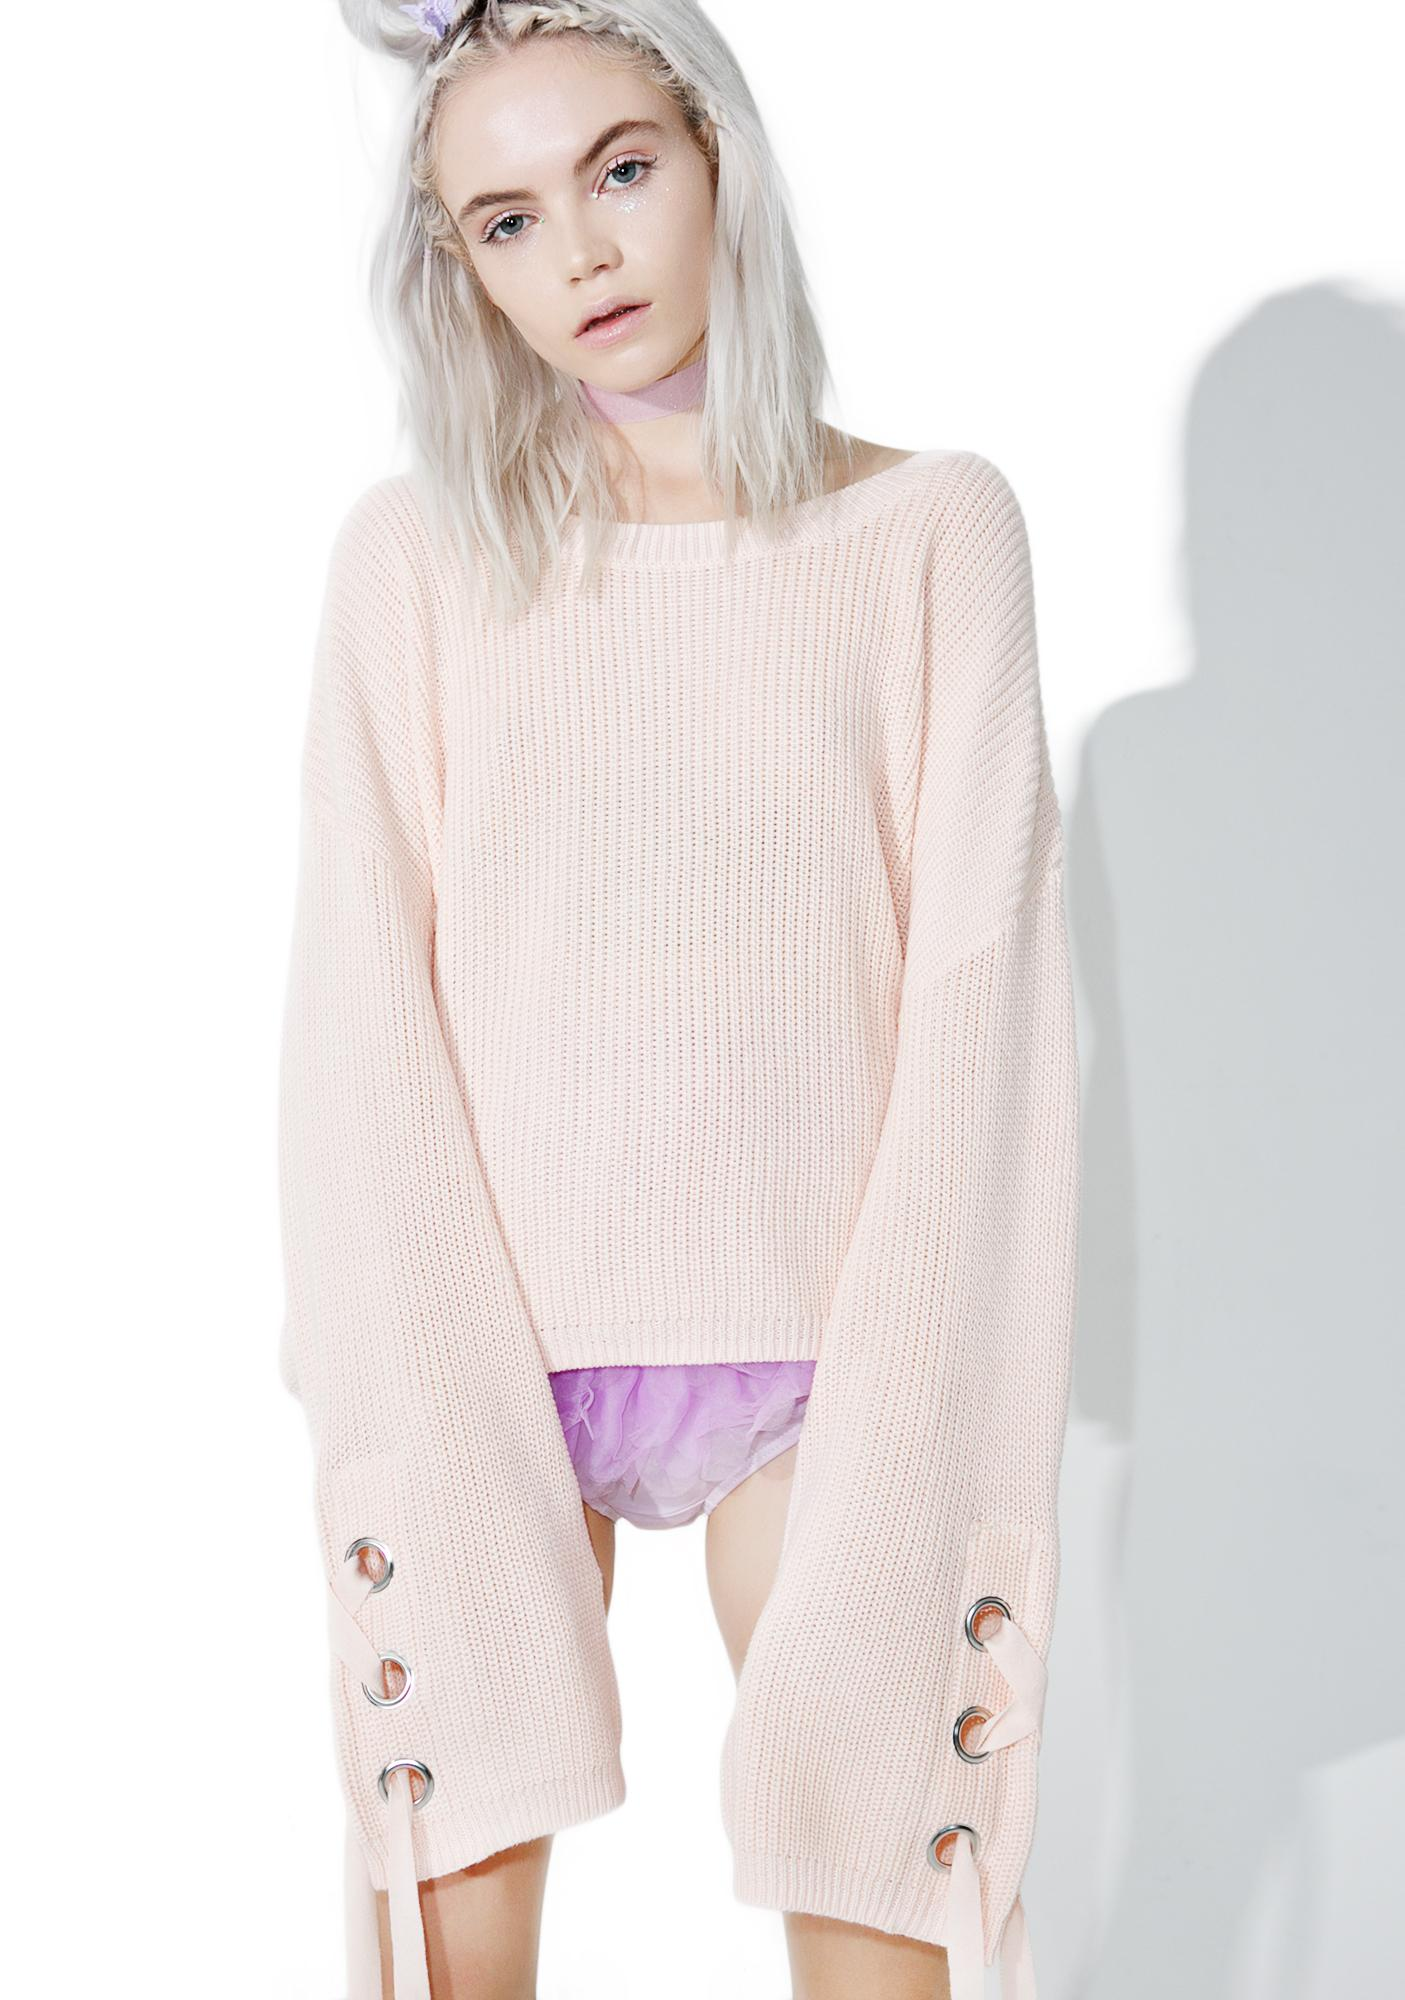 Keen On Ya Lace-Up Sweater